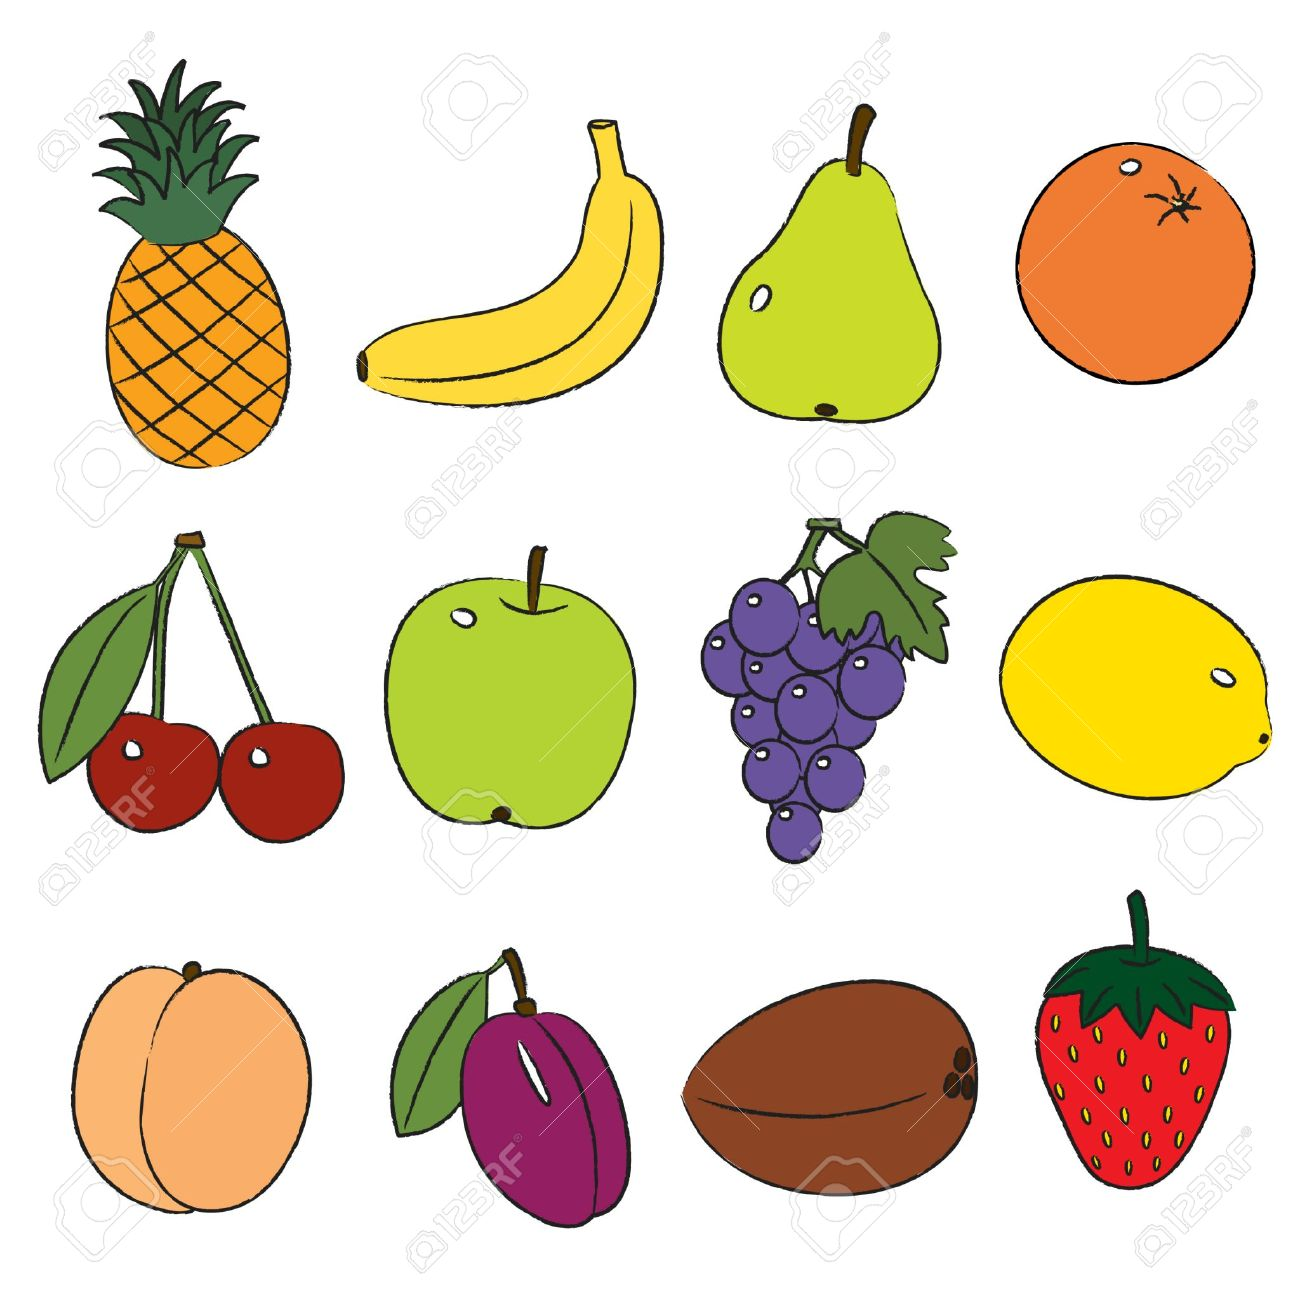 Fruit free clipart clip transparent library 45+ Fruits Clipart   ClipartLook clip transparent library